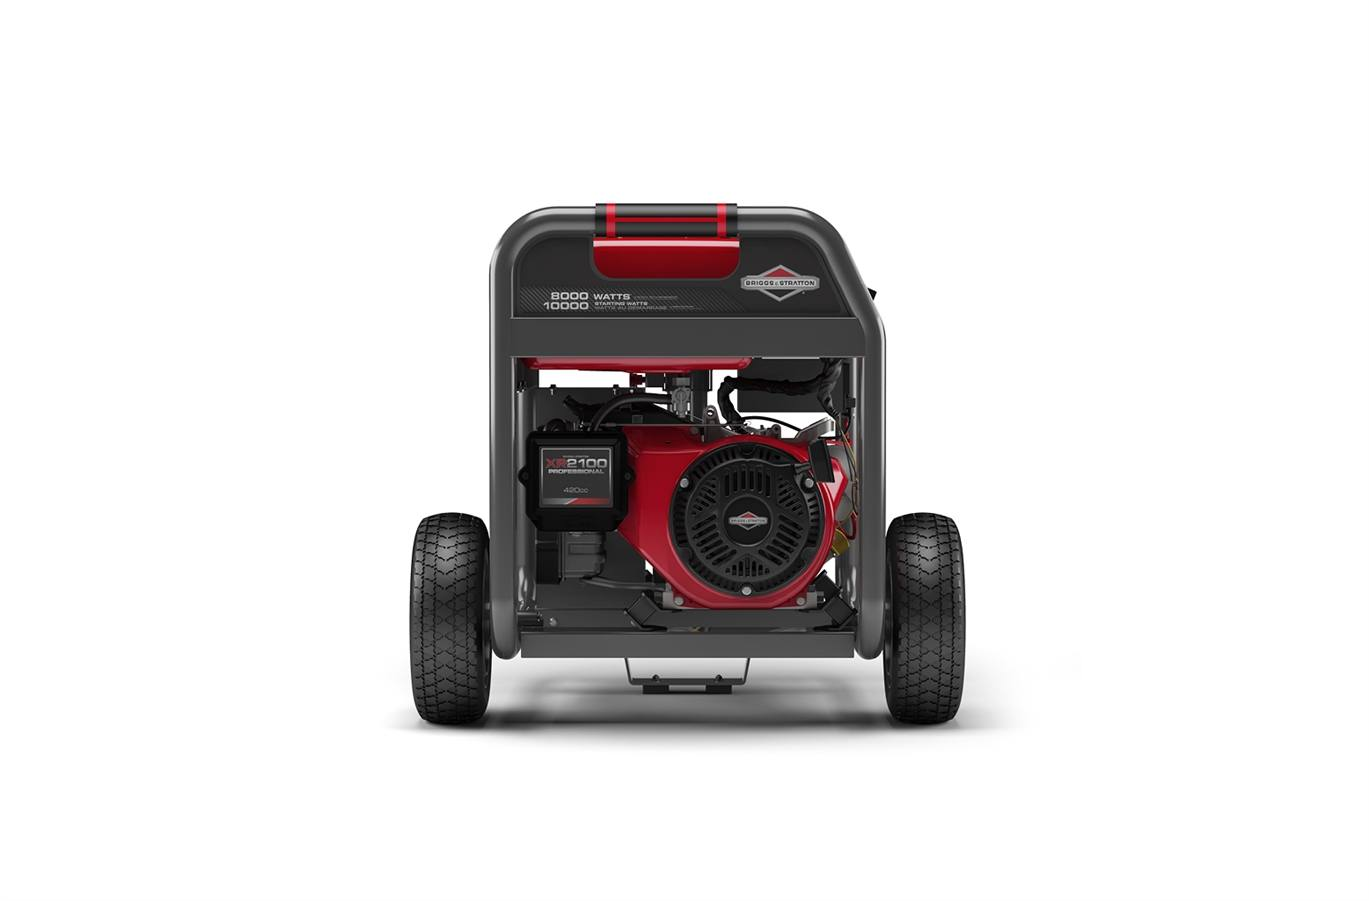 2019 Briggs & Stratton 8000 Watt Elite Series™ Portable